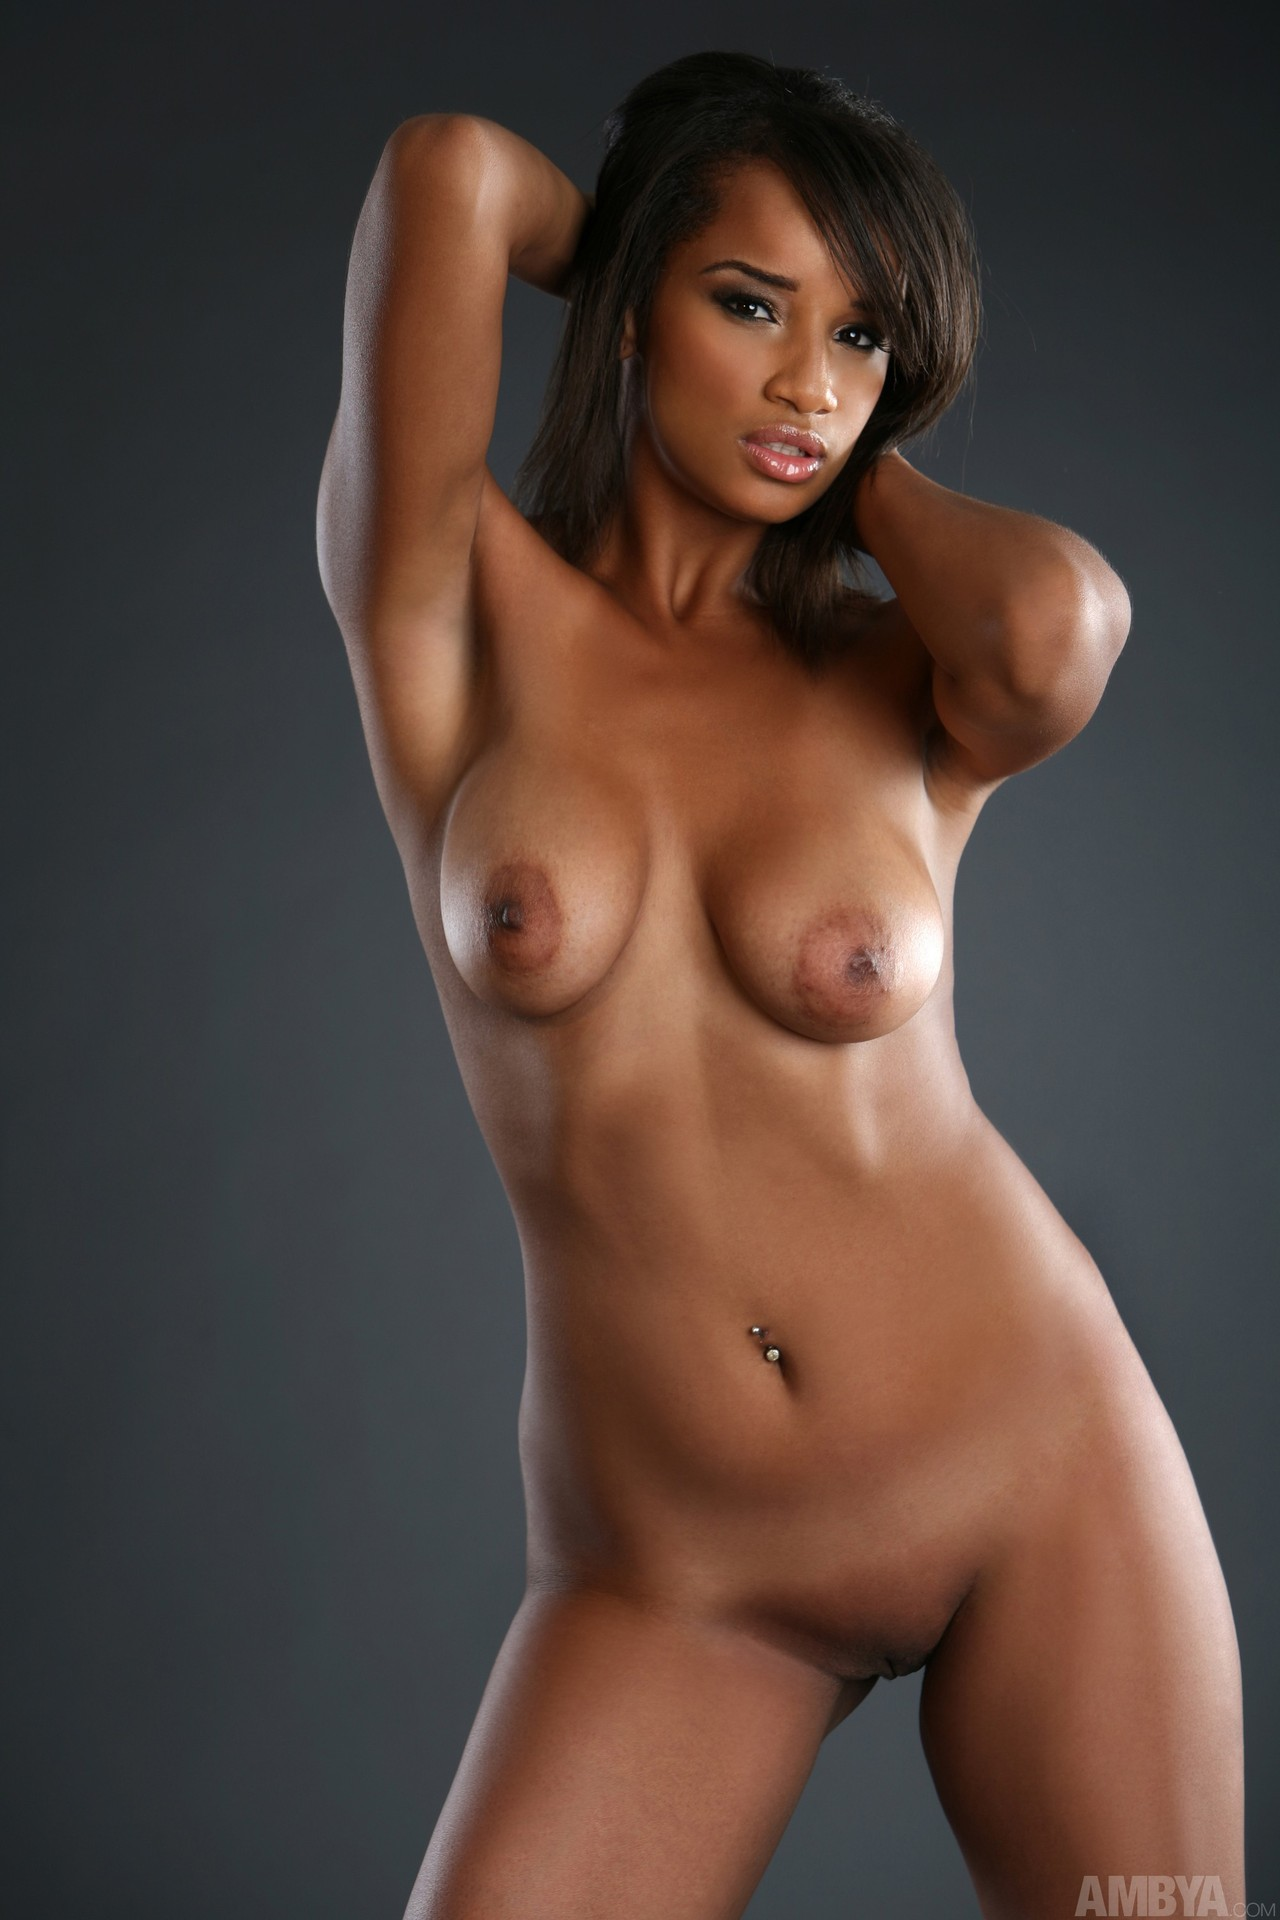 naked black hottie jpg 1200x900